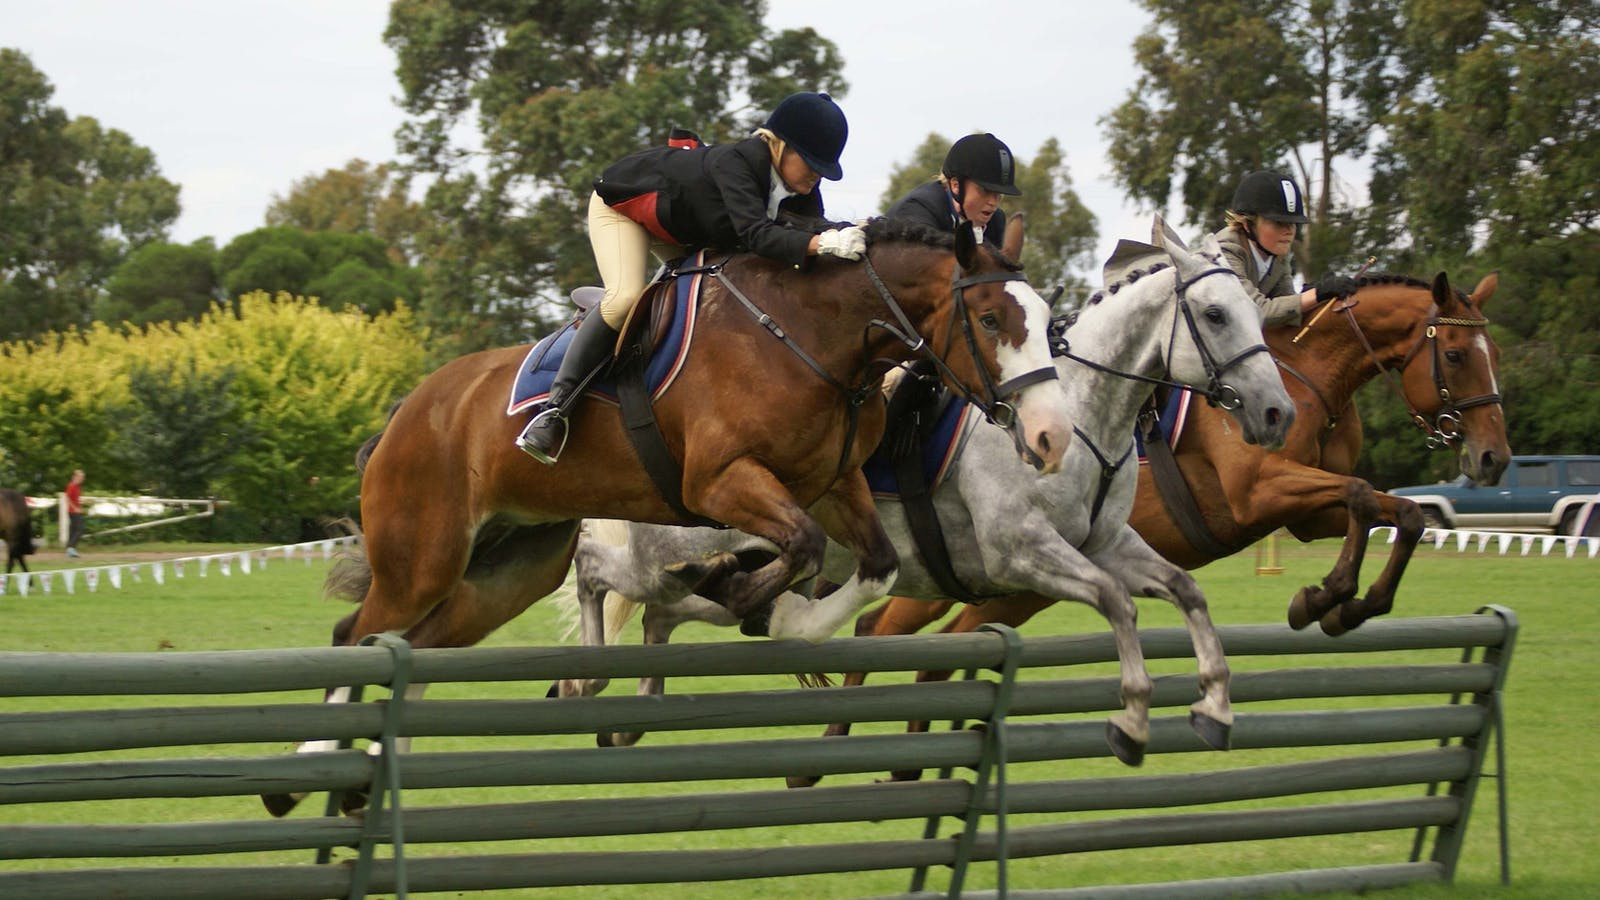 Werribee Park National Equestrian Centre